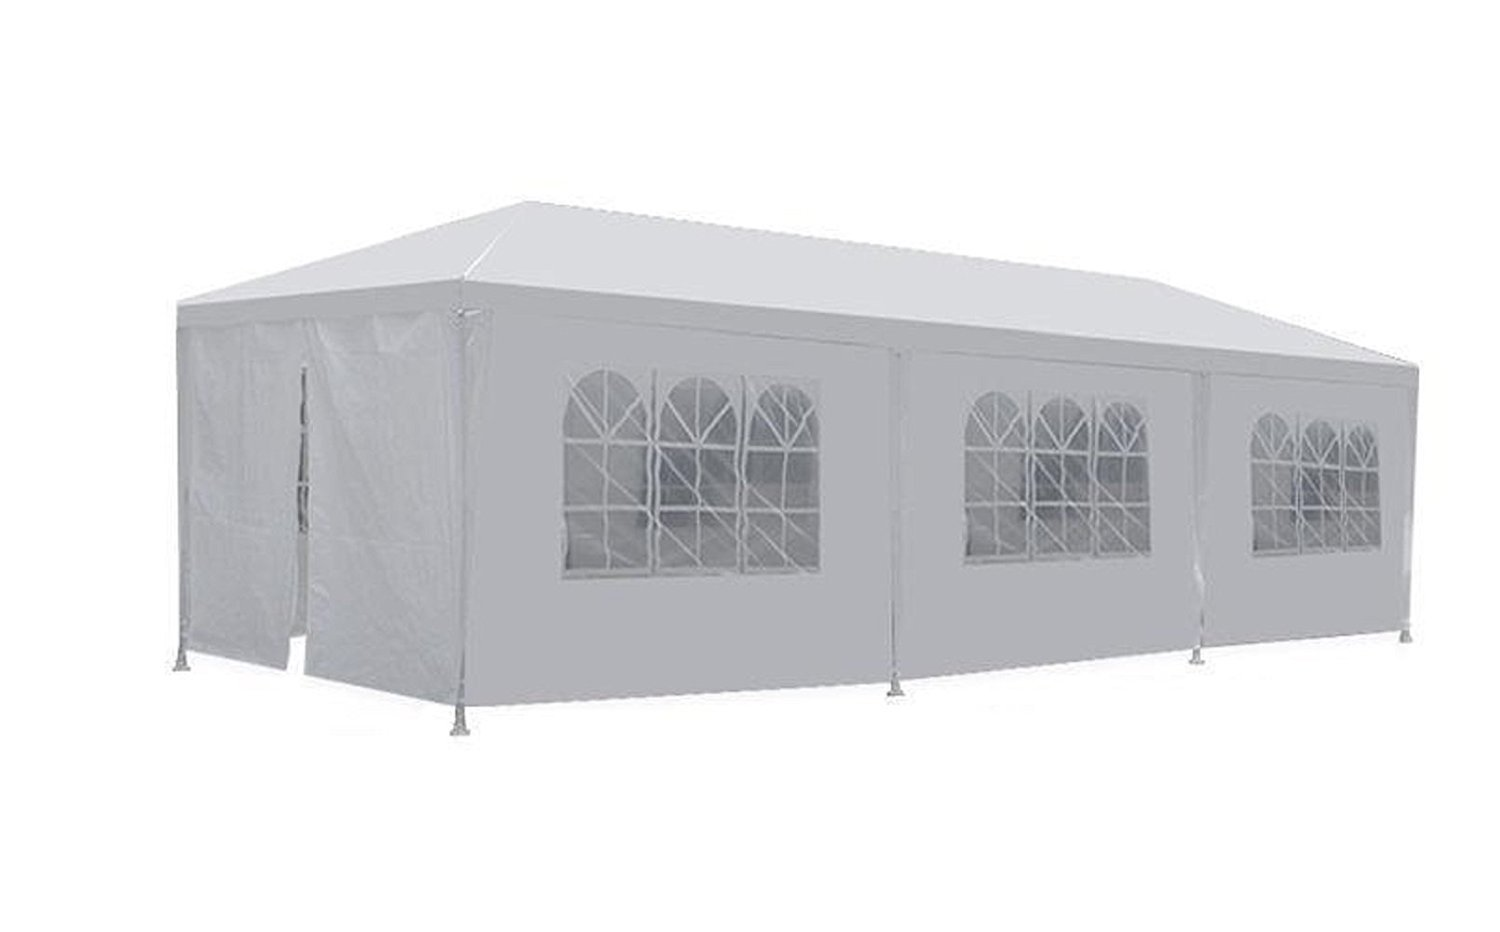 FDW PT-1030-8-White 10'x30' White Outdoor Gazebo Canopy Wedding Party Tent 8 Removabl by FDW